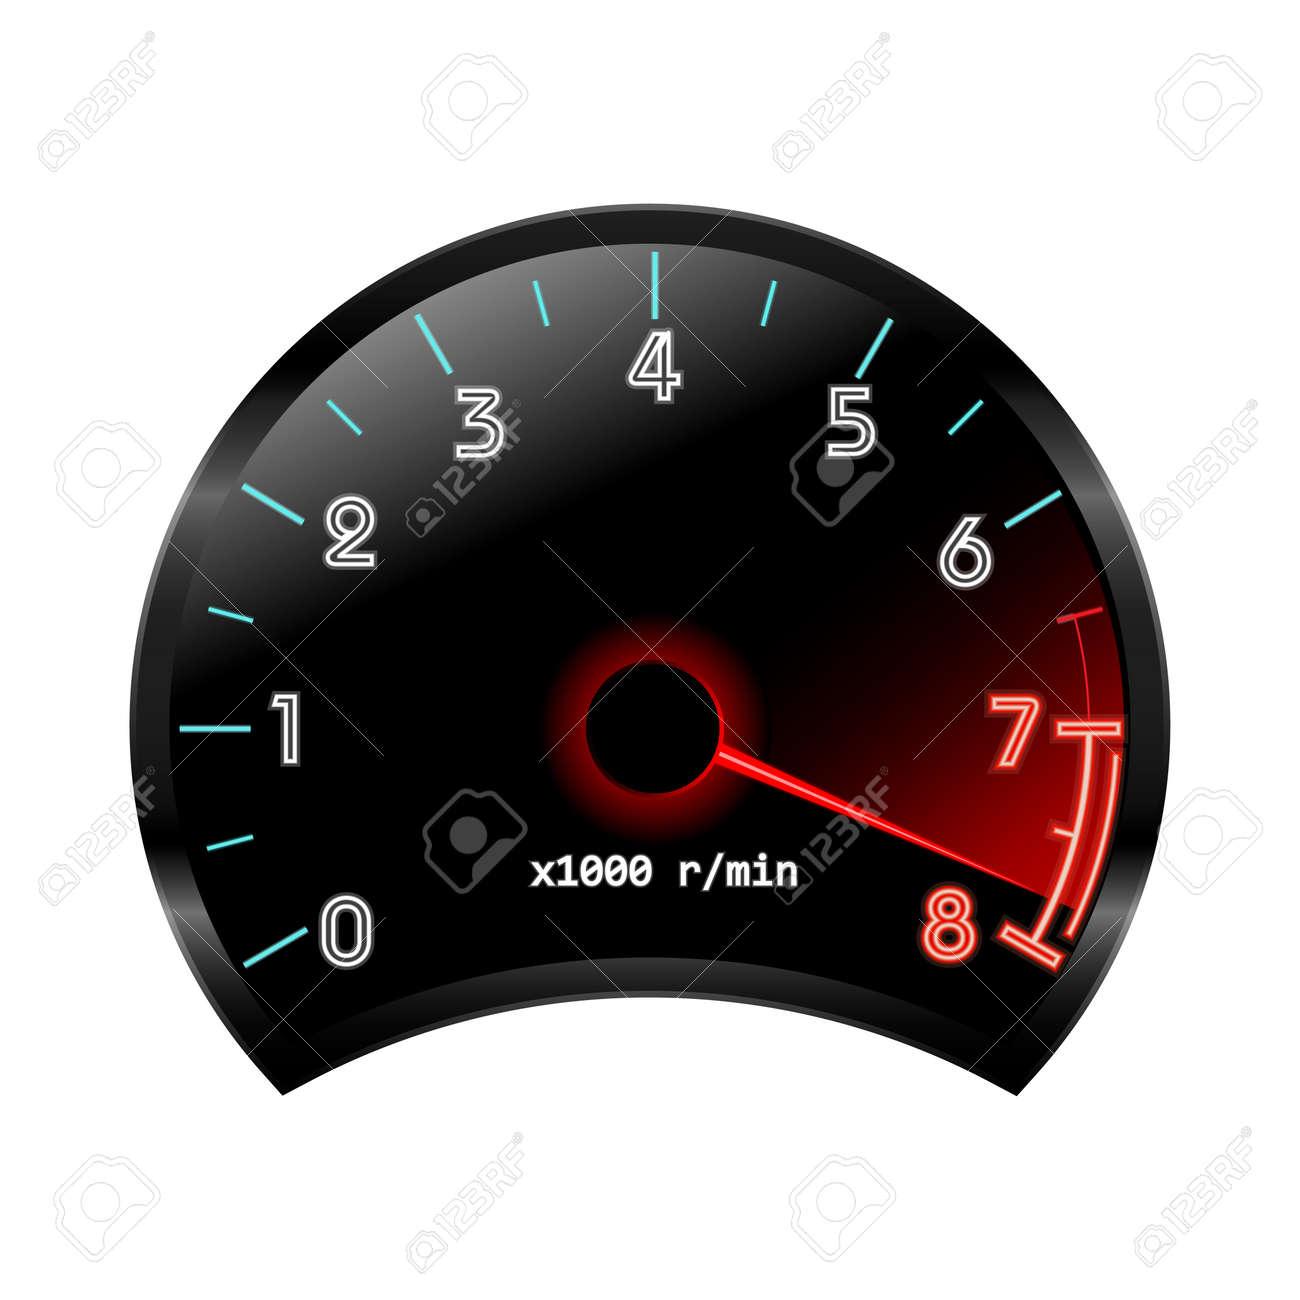 rpm gauge vector. tachometer revolution-counter , rpm gauge. vector illustration stock - 45247032 rpm gauge y